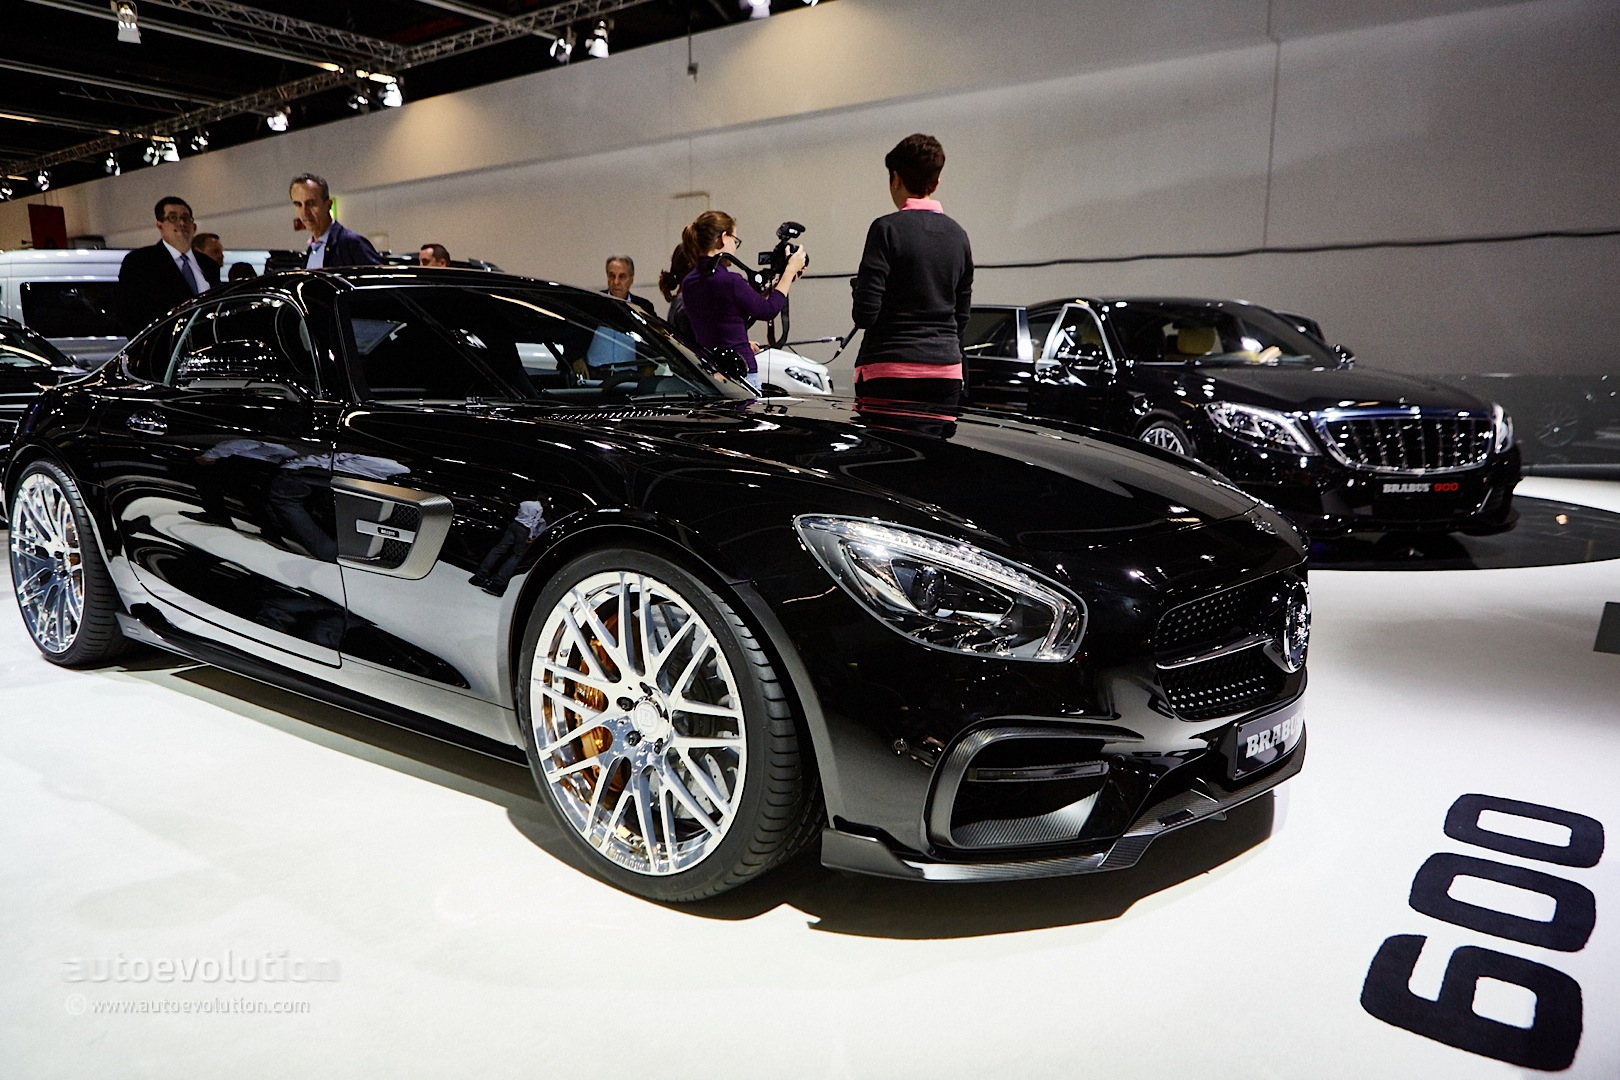 brabus 600 mercedes amg gt s is faster than the bentayga in frankfurt 2015 autoevolution. Black Bedroom Furniture Sets. Home Design Ideas